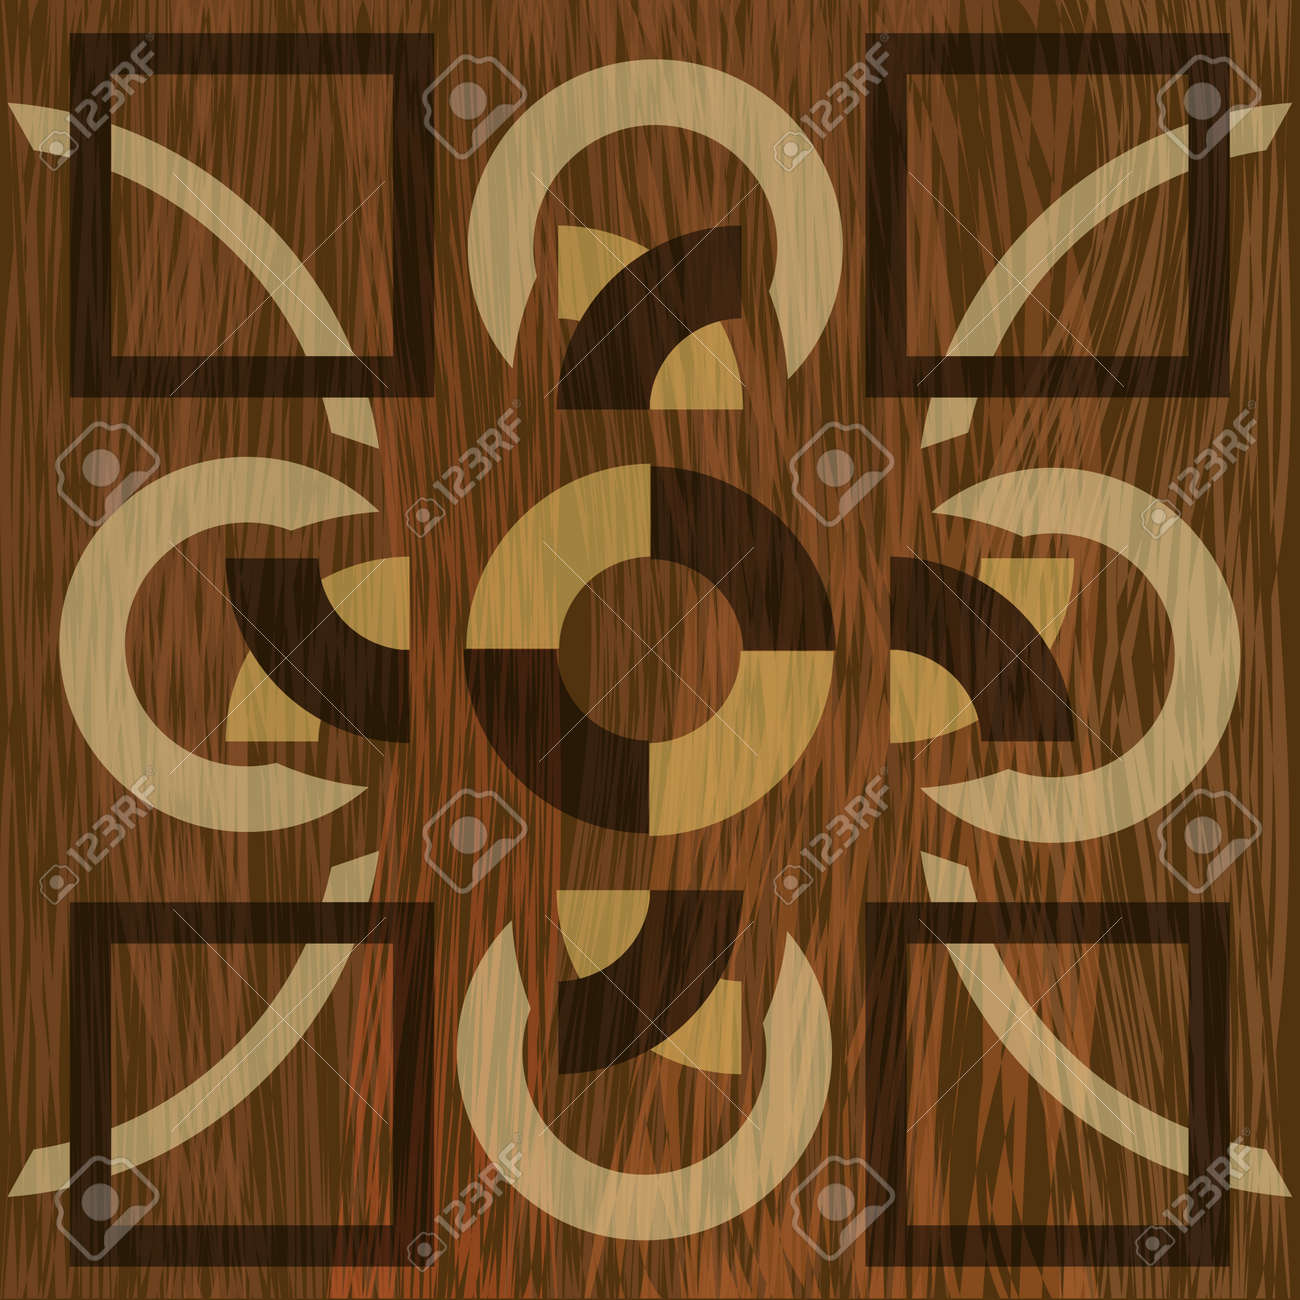 Wooden Inlay Light And Dark Wood Patterns Veneer Textured